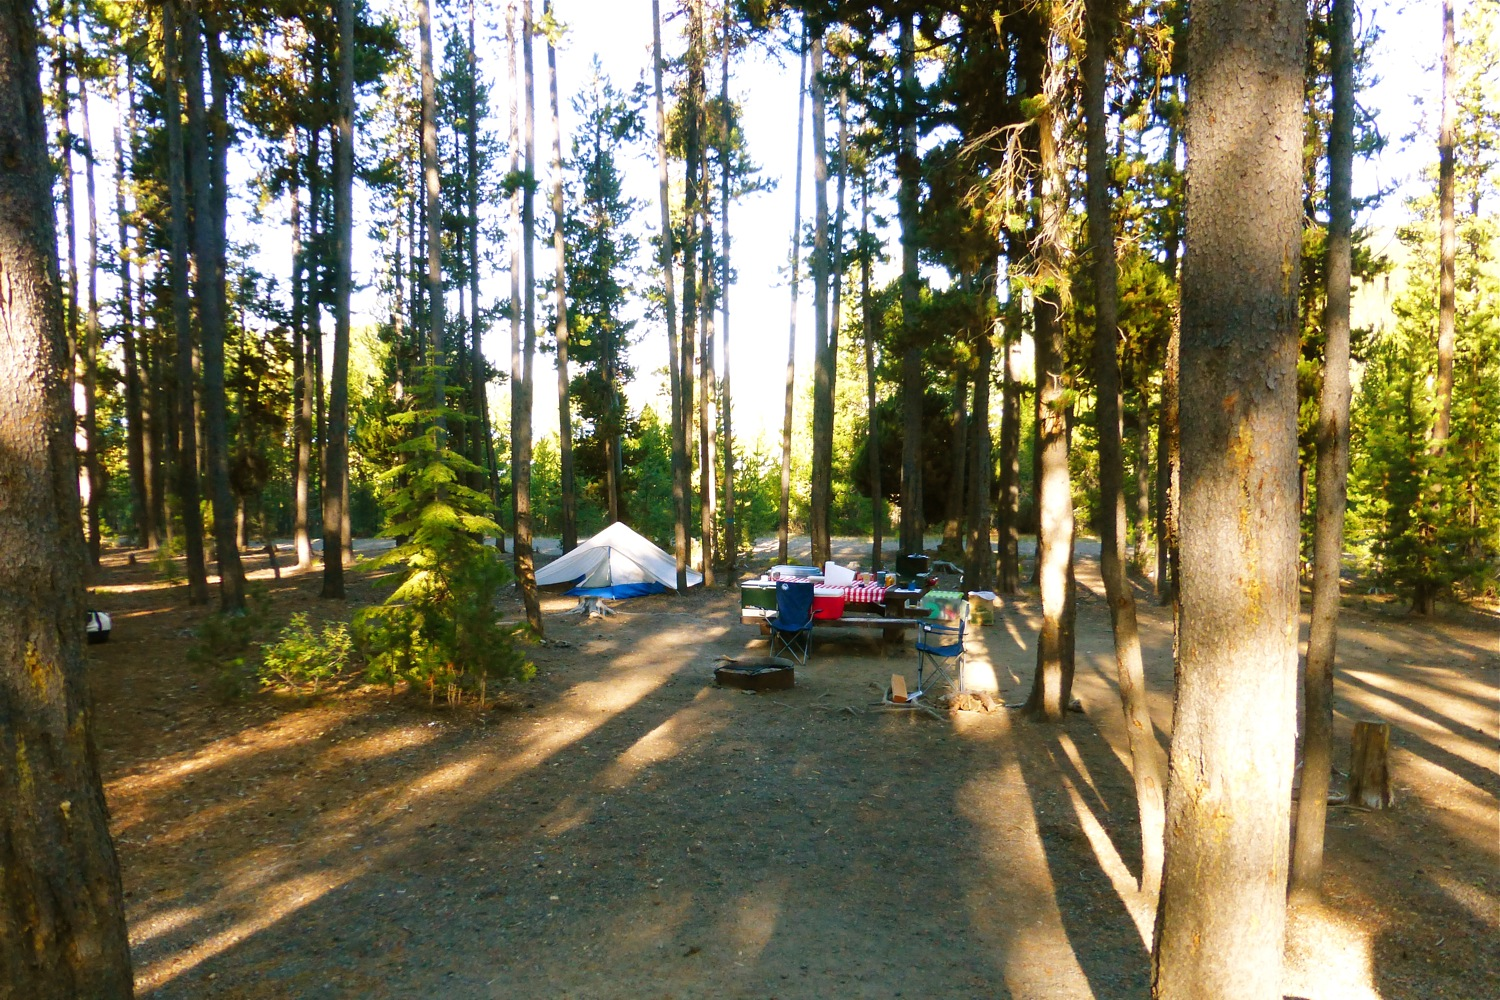 Cinder Hill Campground Newberry National Volcanic Monument, Cinder Hill Campground, Anderson campsite Newberry National Volcanic Monument